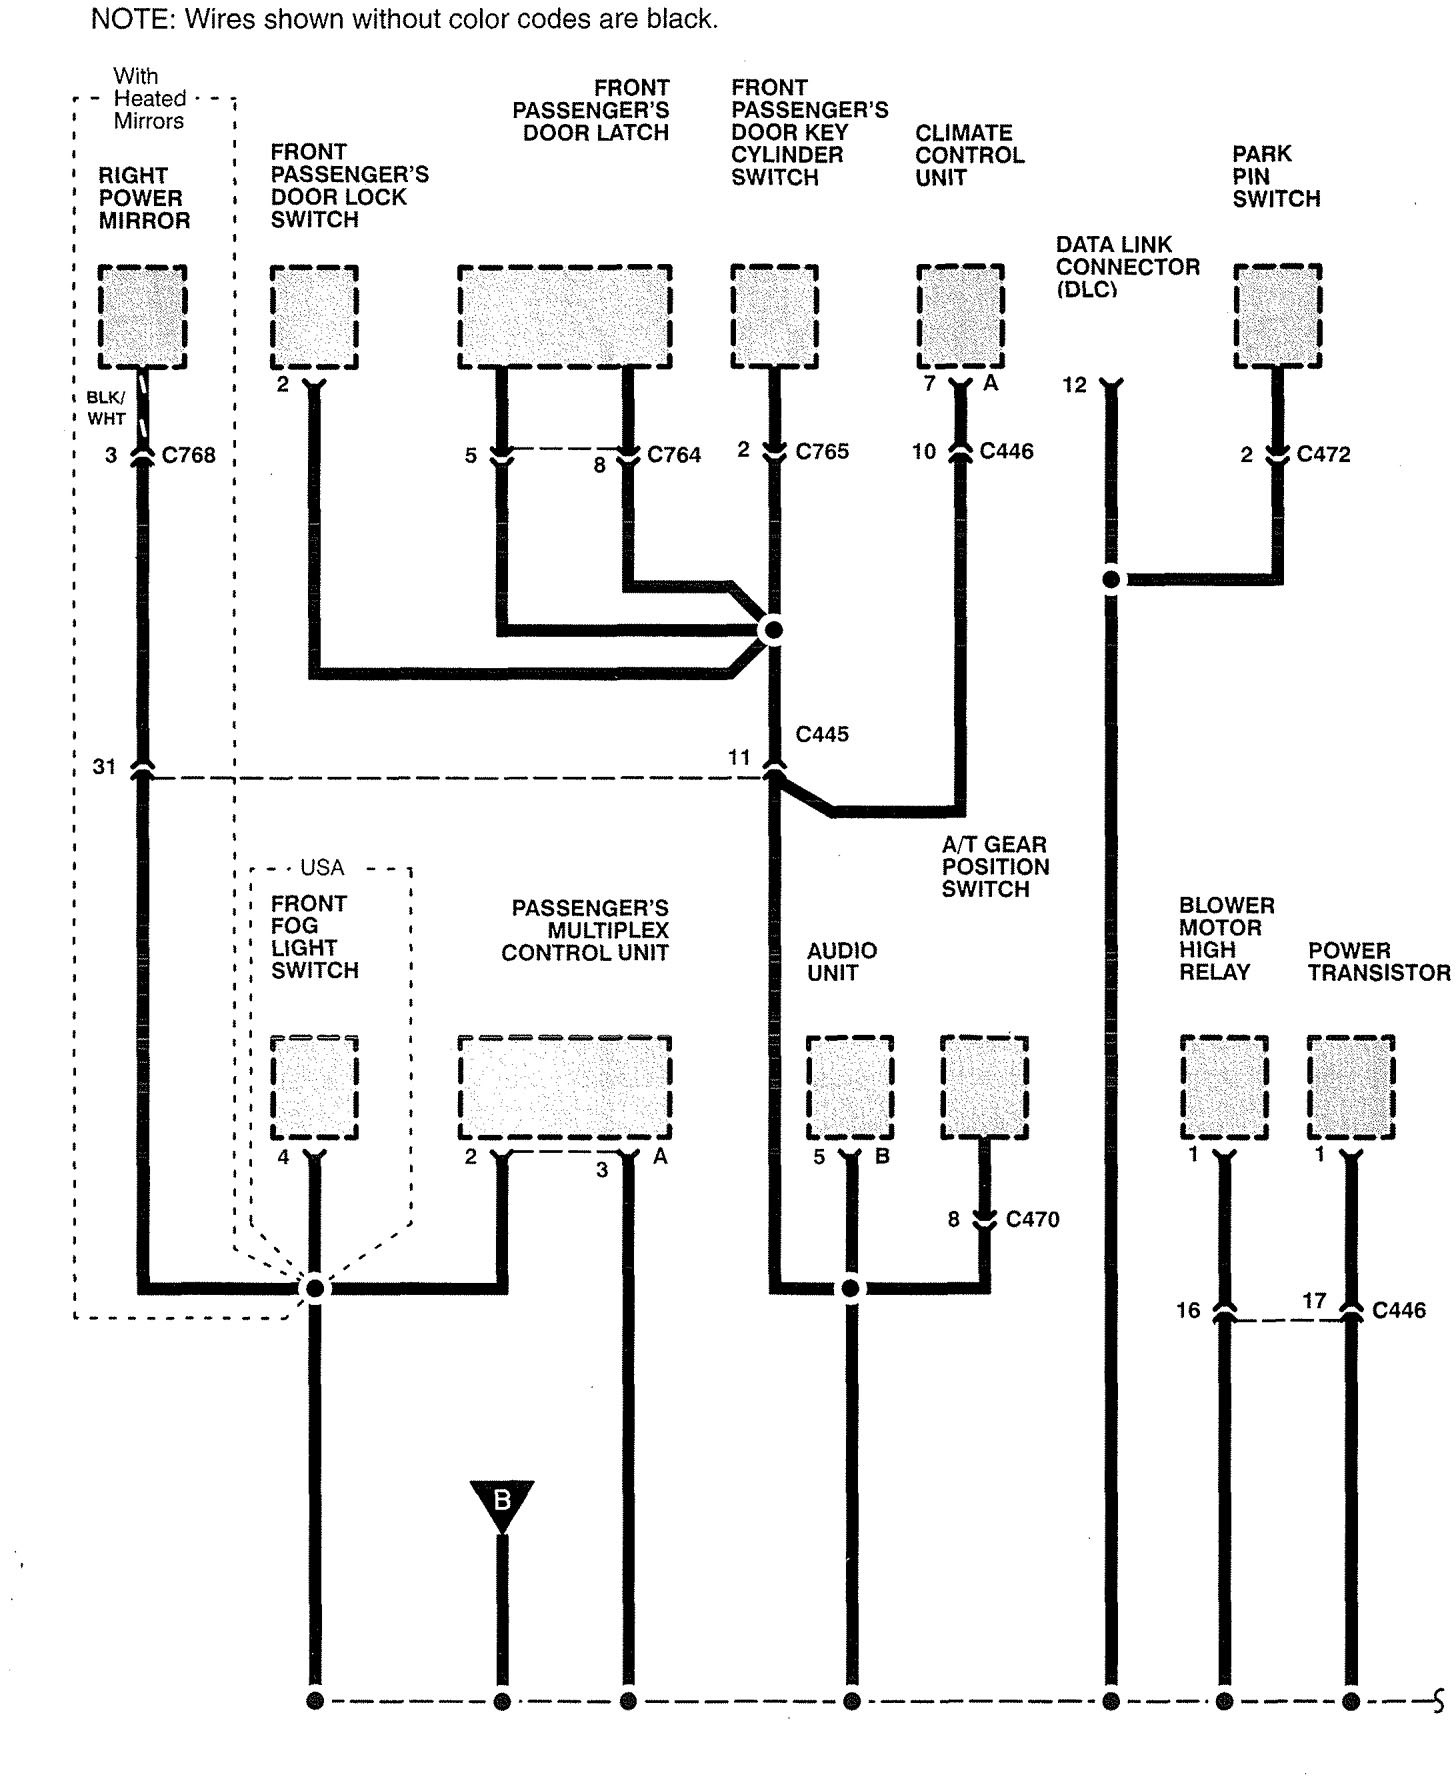 Acura Rl 1996 1998 Wiring Diagrams Ground Distribution Diagram For 1997 Part 6